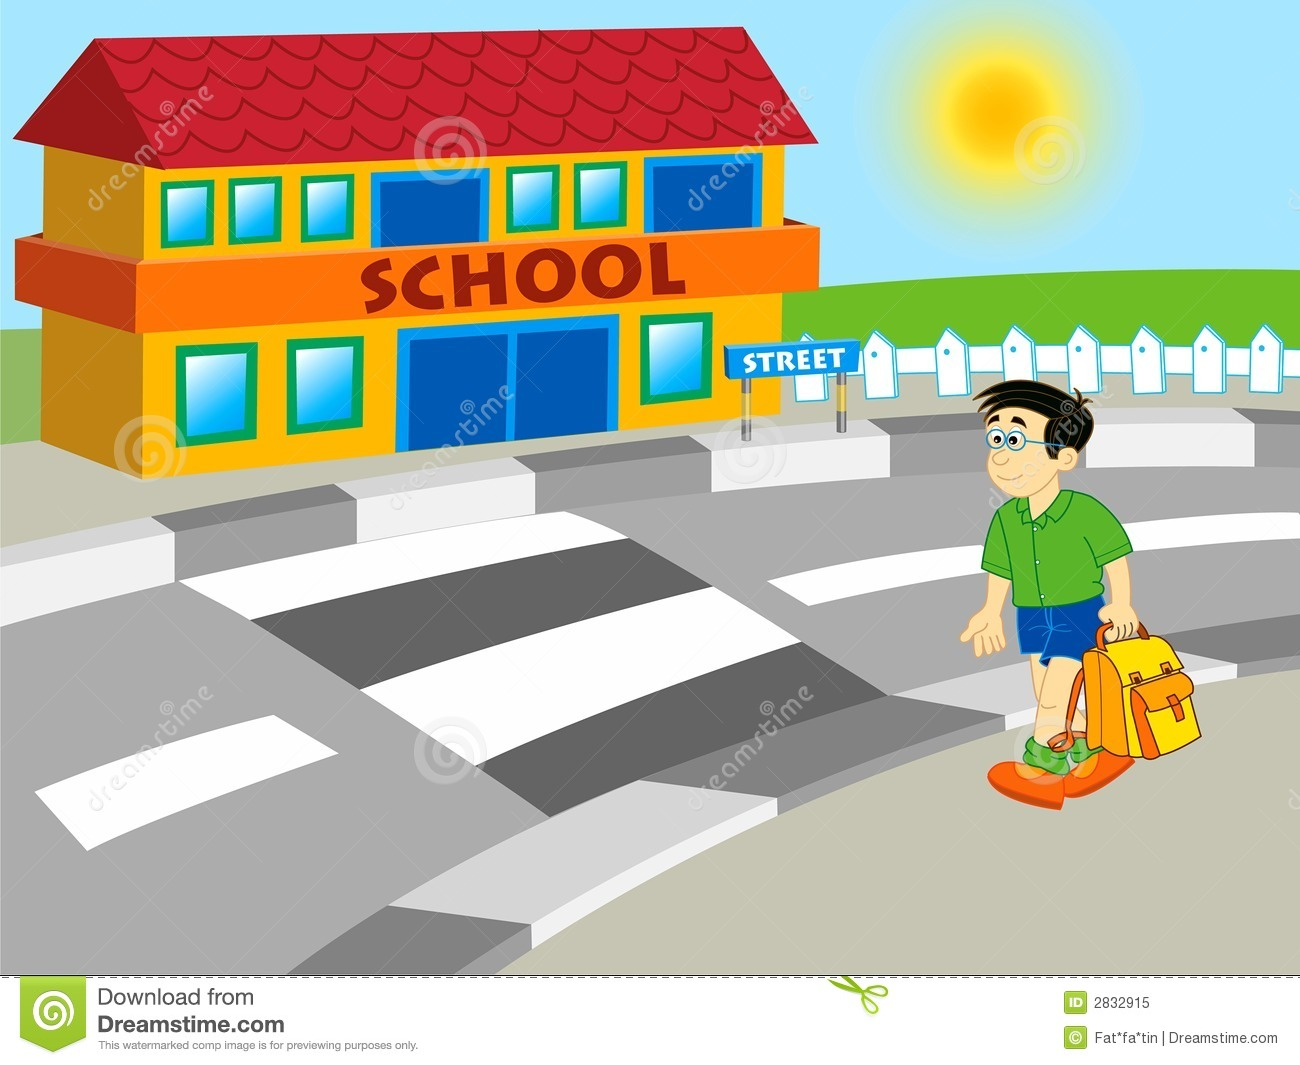 Walk around school clipart picture transparent download Walk to school clipart 4 » Clipart Station picture transparent download